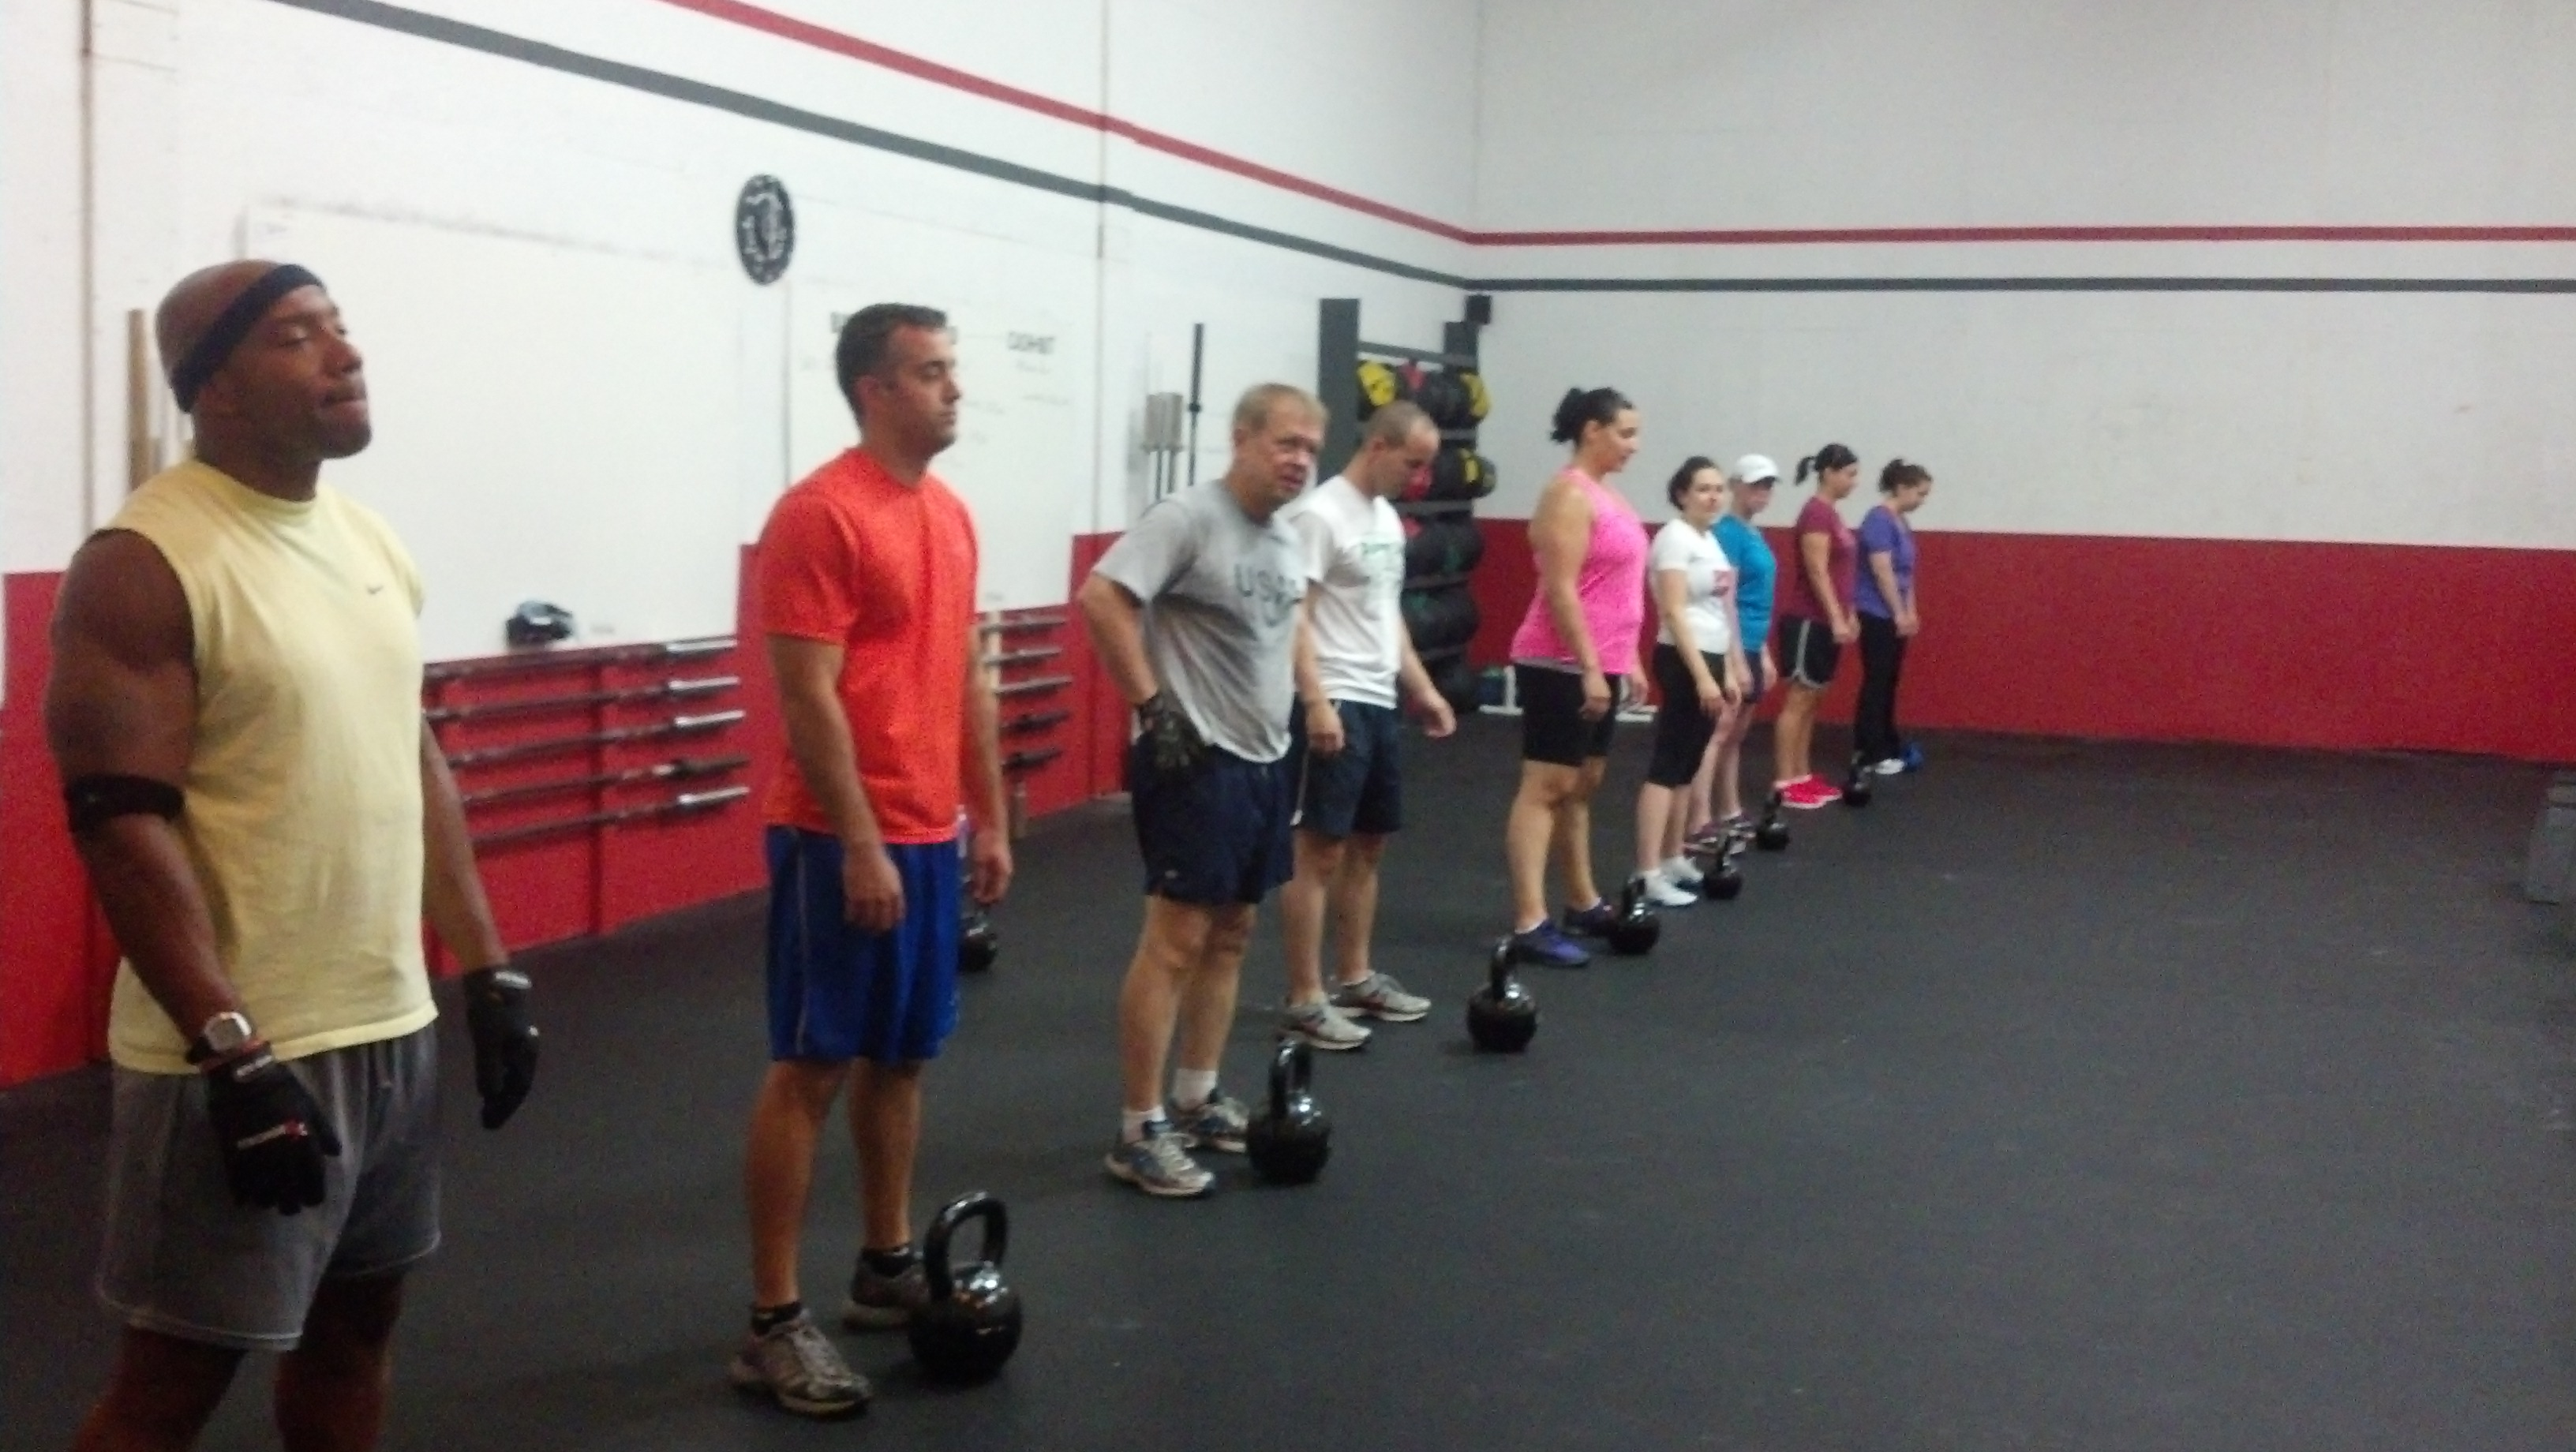 Wednesday, August 29 WOD